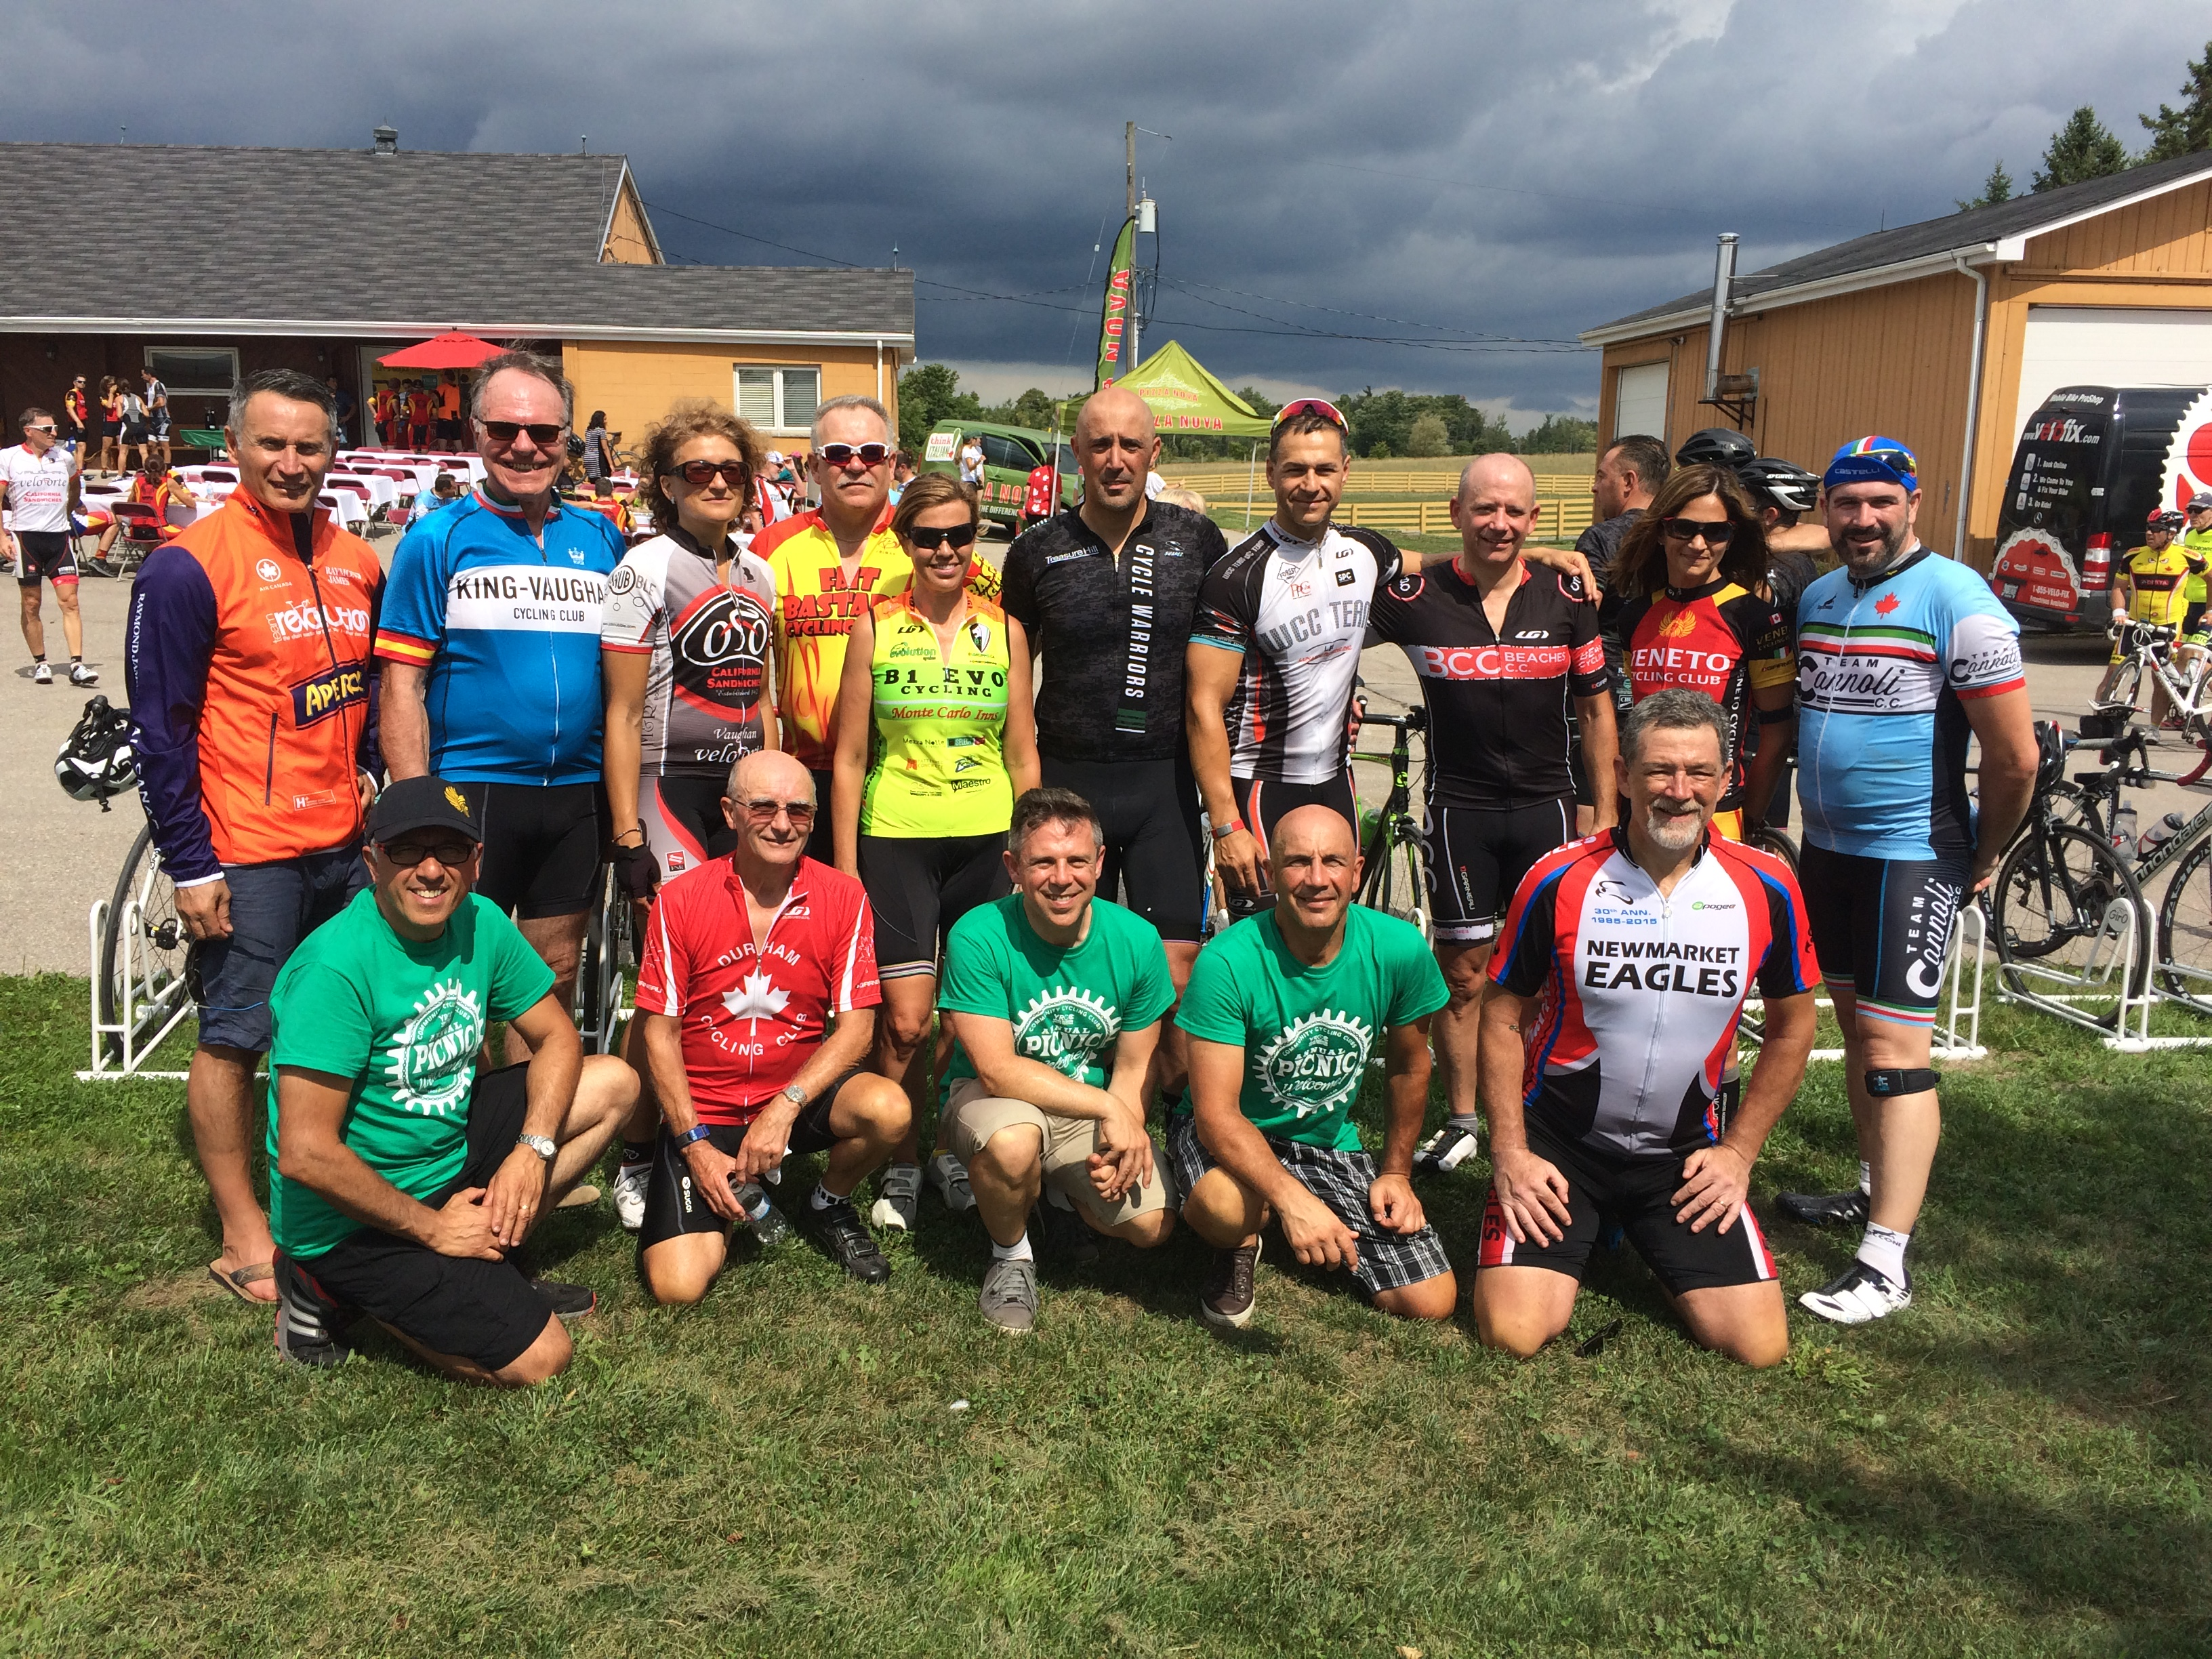 3rd Annual YRCC Picnic Attended by Over 300 Cyclists.